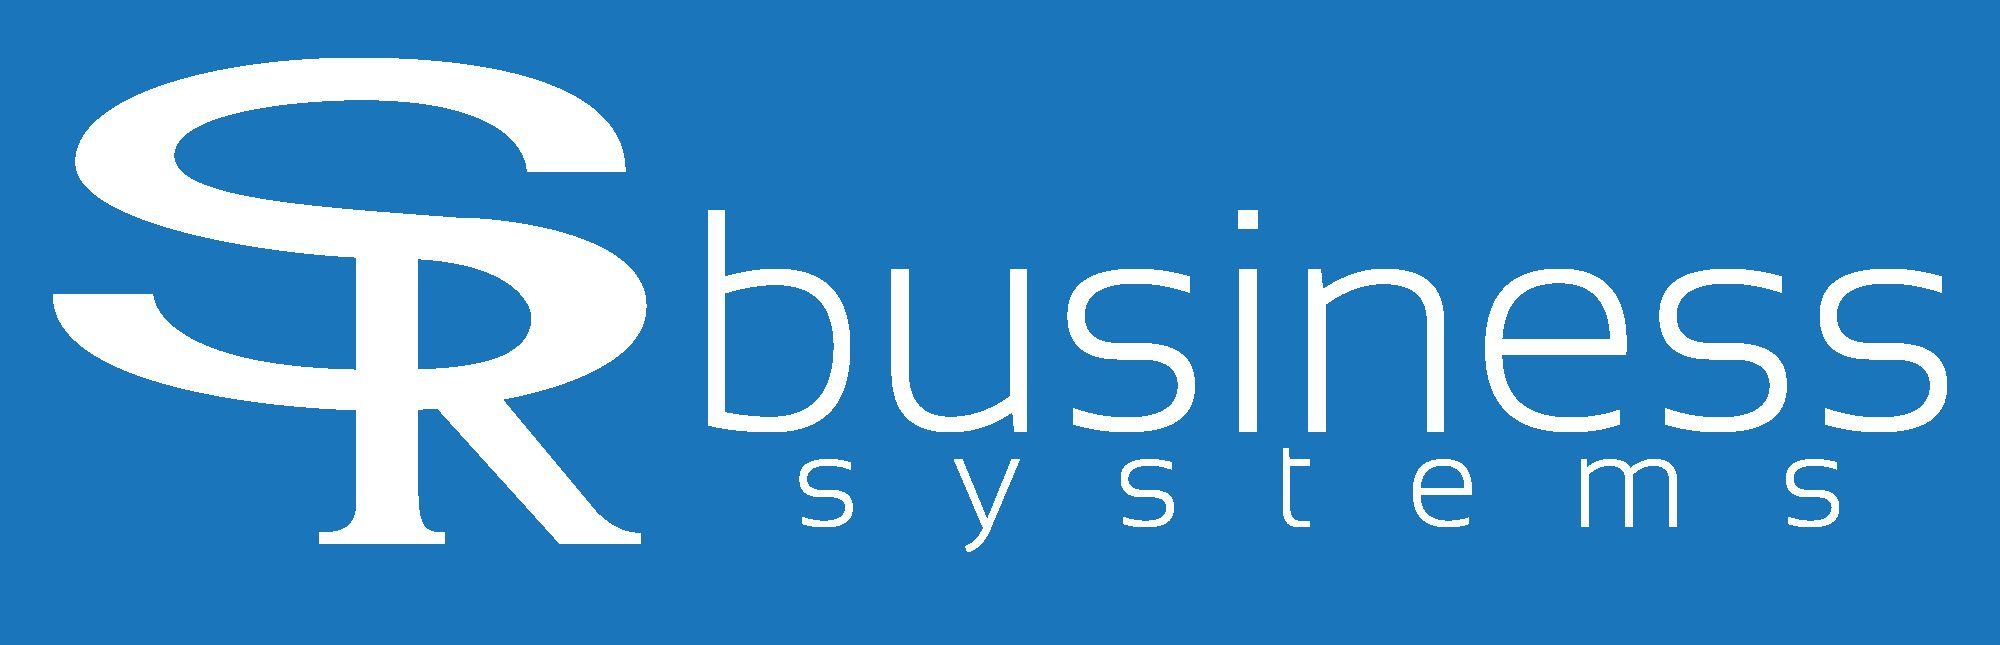 SR Business Systems